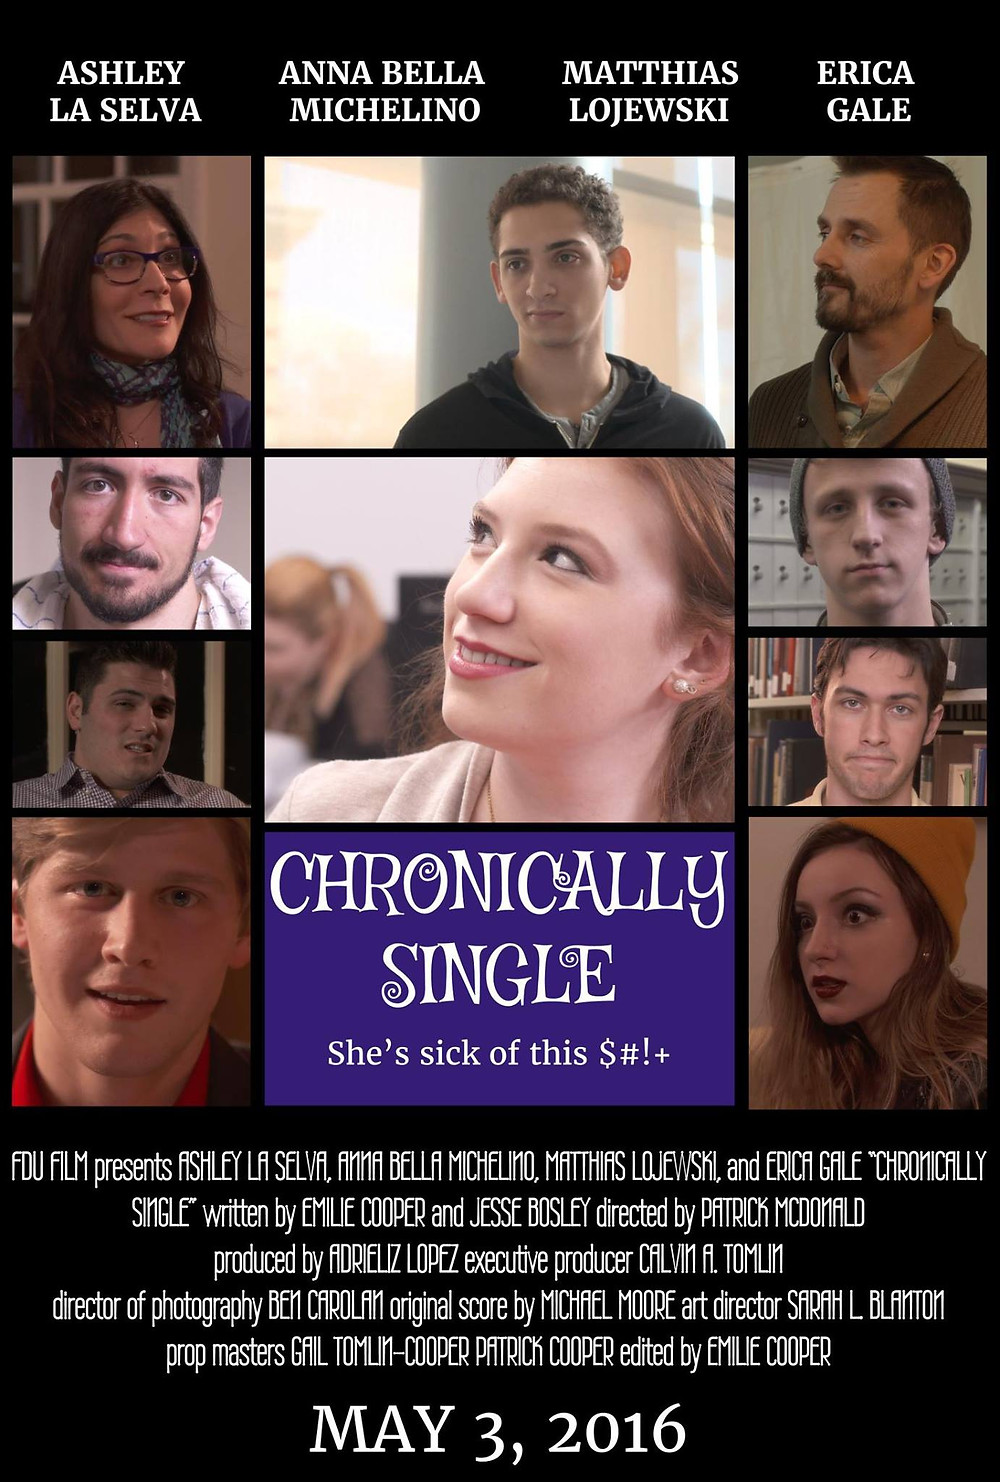 Movie Poster for Chronically Single